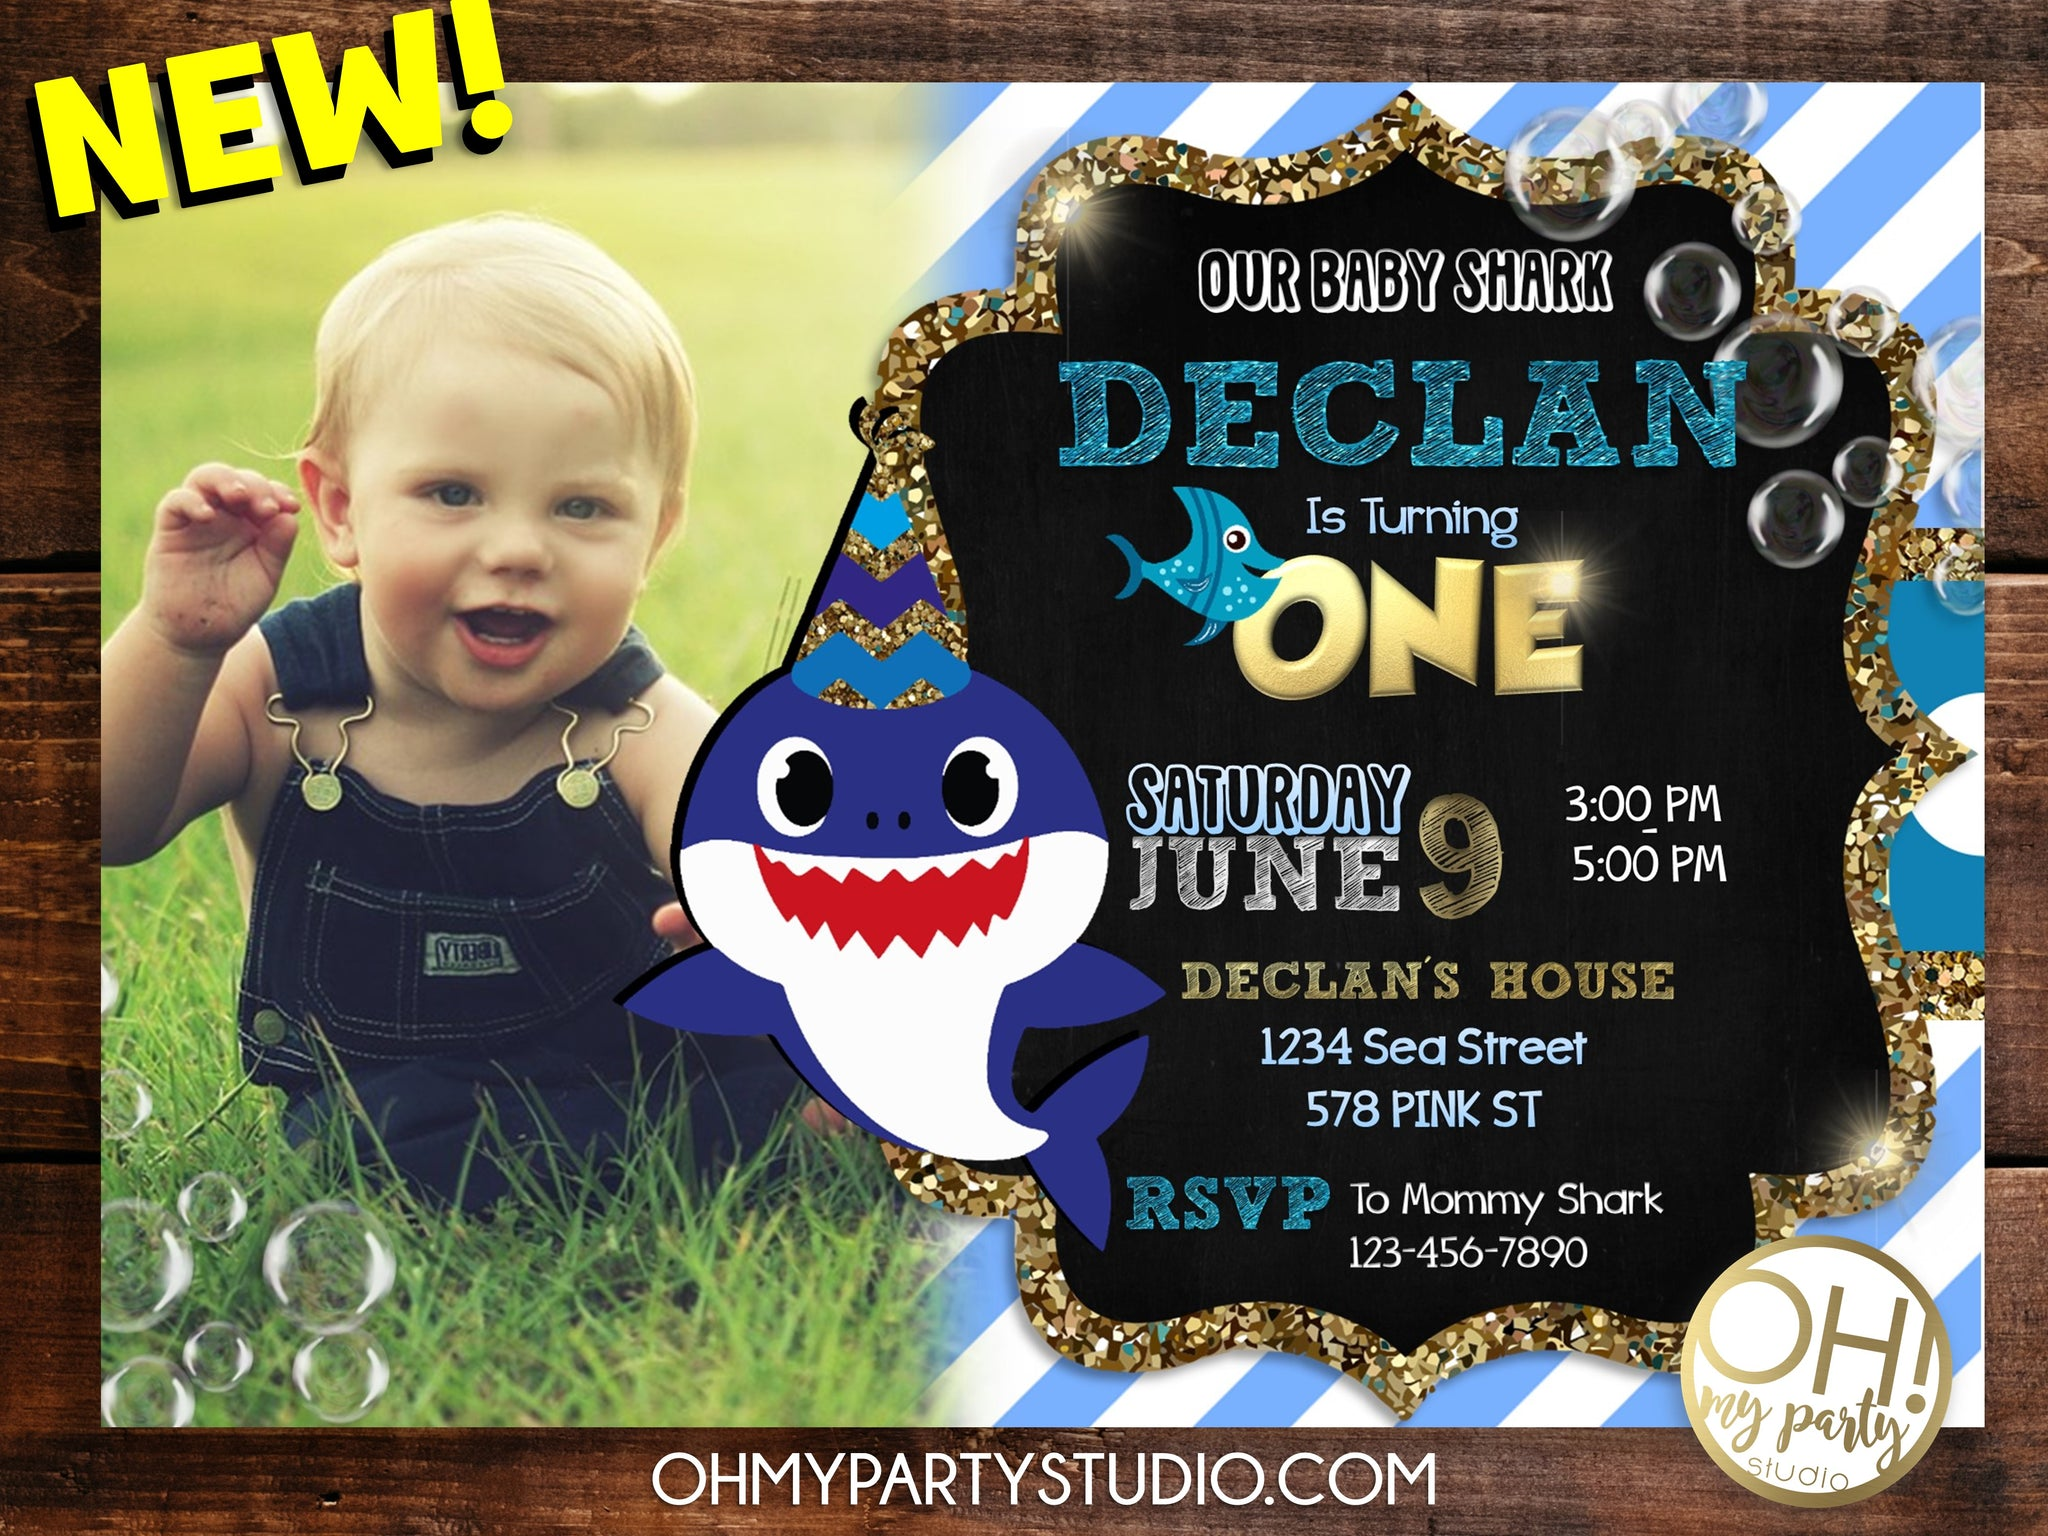 Baby shark birthday invitation for boy, baby shark invitation, baby shark party, baby shark invitations,baby shark party ideas, BABY SHARK PARTY THEME, BABY SHARK INVITE, BABY SHARK CARD, BABY SHARK INVITATIONS, BABY SHARK INVITATION WITH PHOTO